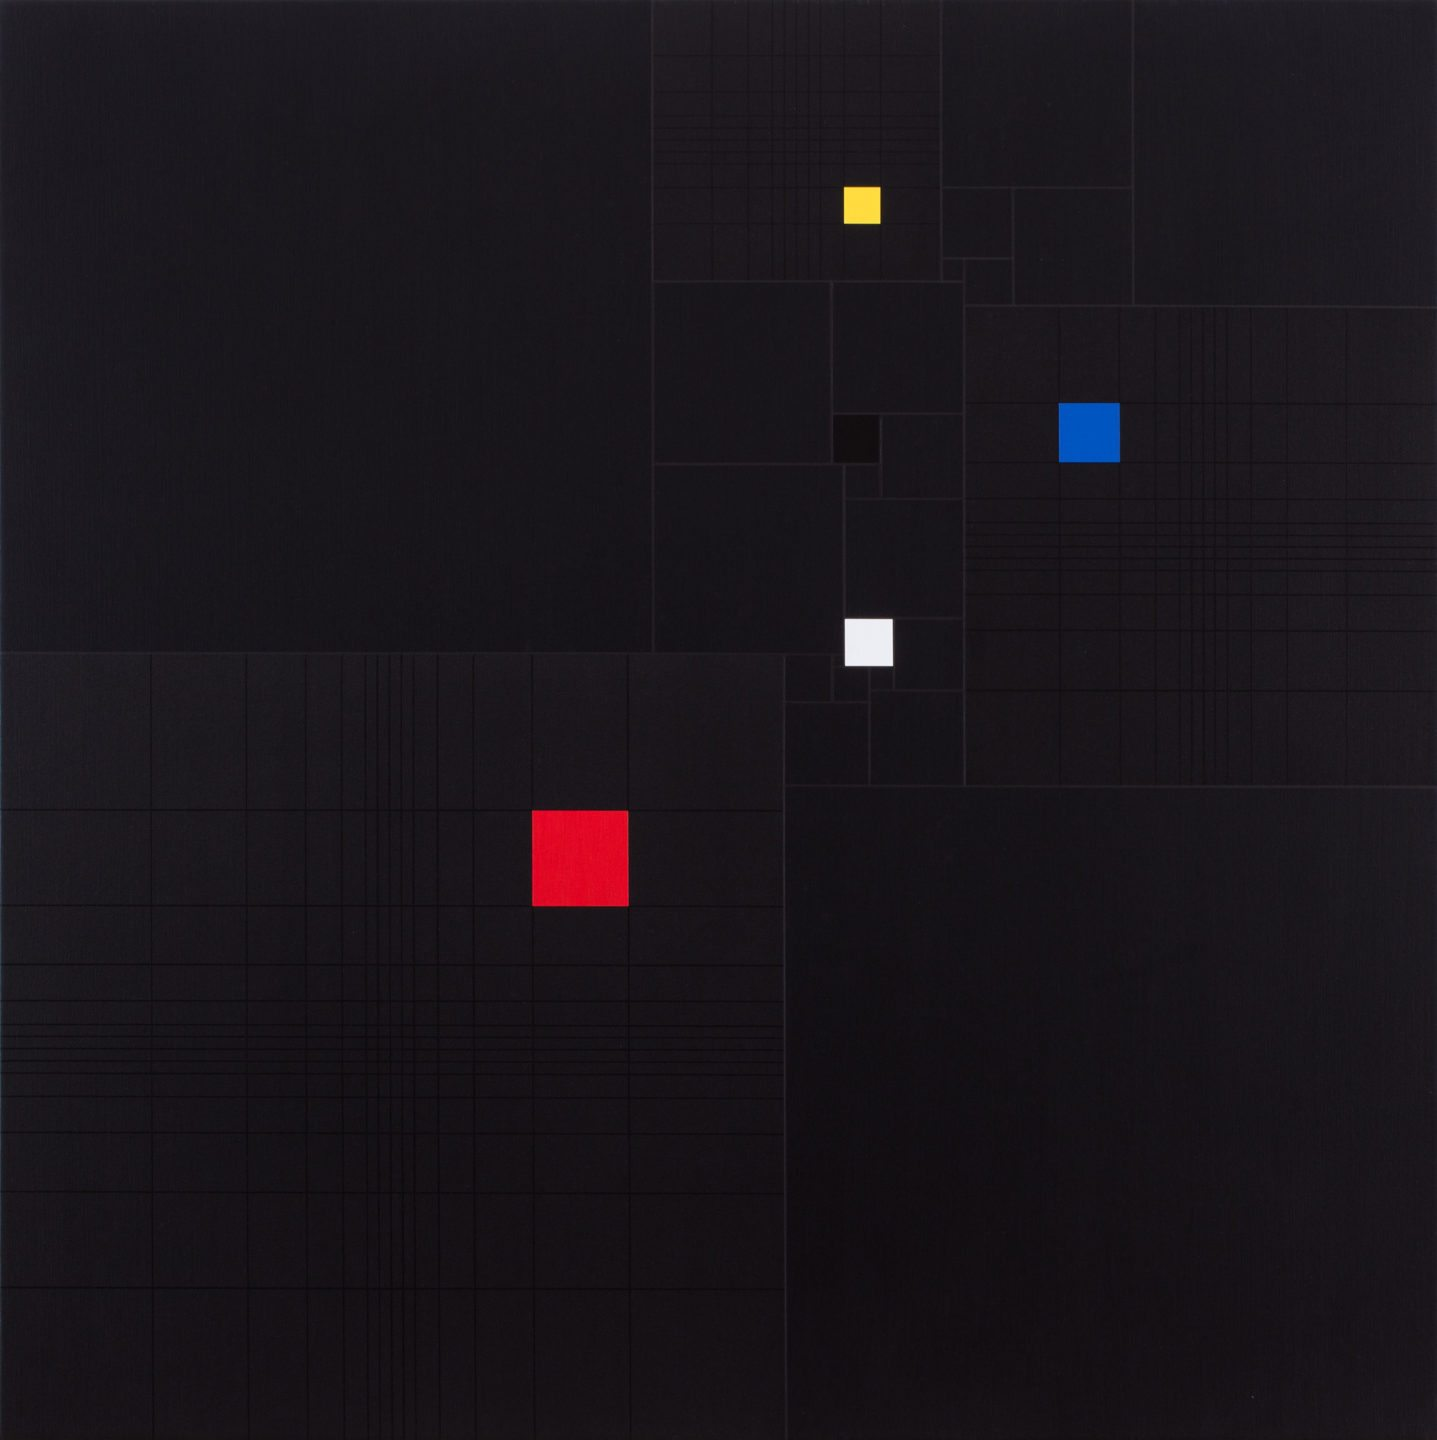 MK 36 Squares in Square (with 3 Fibonacci-sequence) 20170517 2017 acrylic on canvas 90x90cm (3)